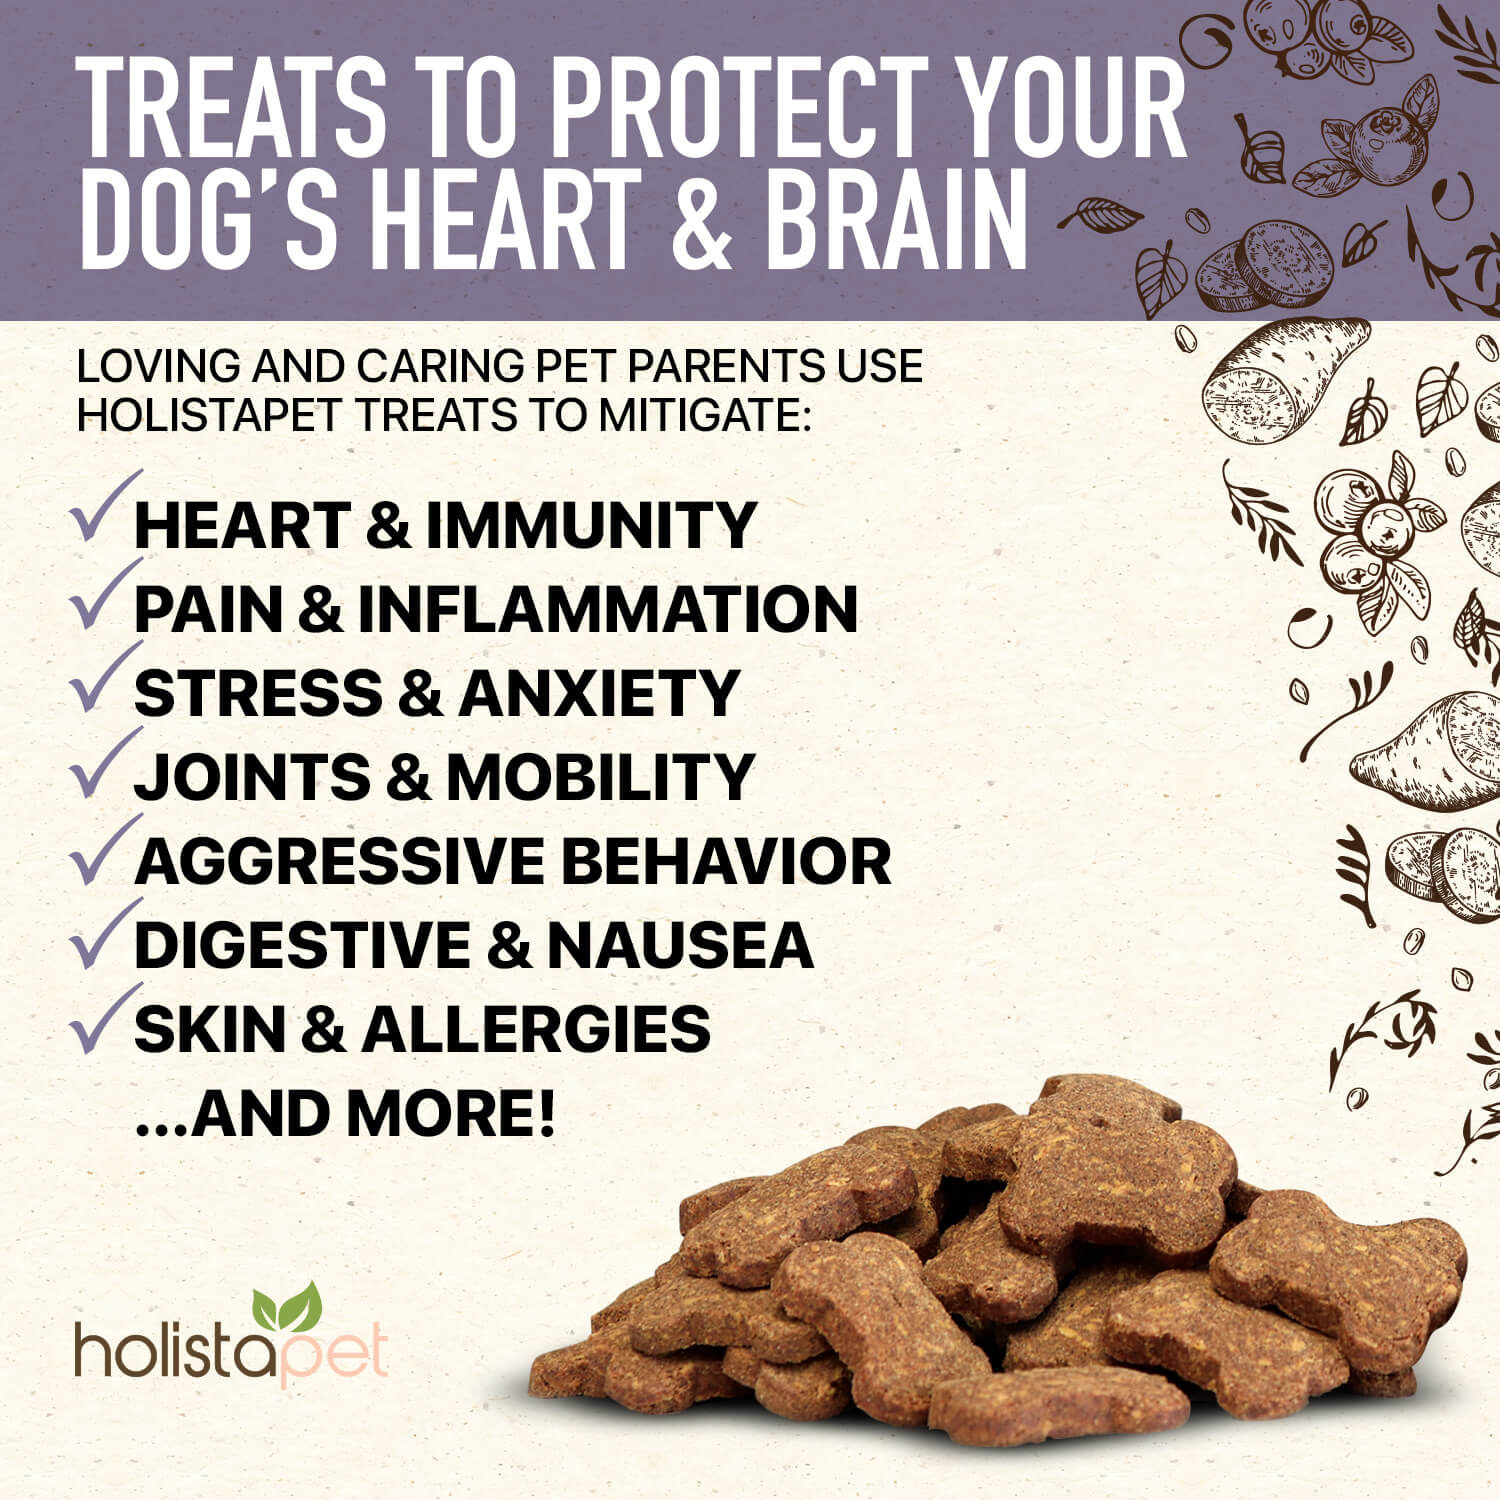 Holistapet Hemp Heart And Immunity Dog Treats Mitigate Pain Inflammation Stress Anxiety Joints Mobility Aggressive Behavior Digestive Skin And More